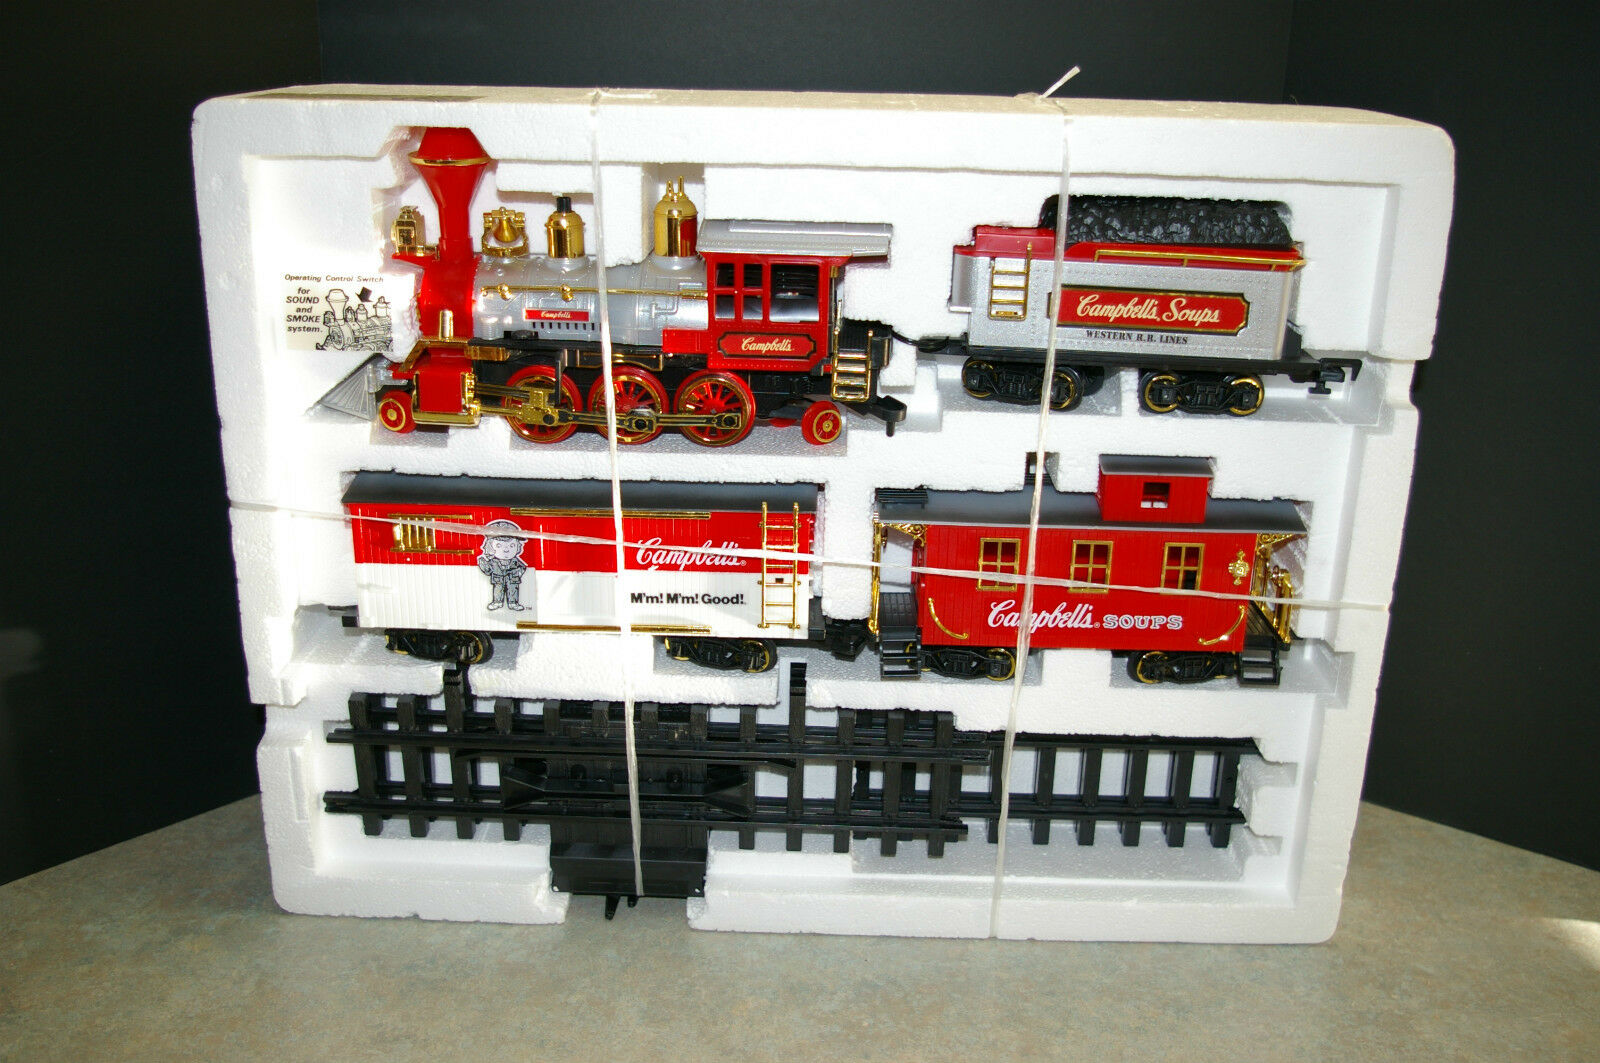 RARE 1986 NEW BRIGHT 'CAMPBELL'S SOUP' TRAIN SET C TESTED AND WORKS